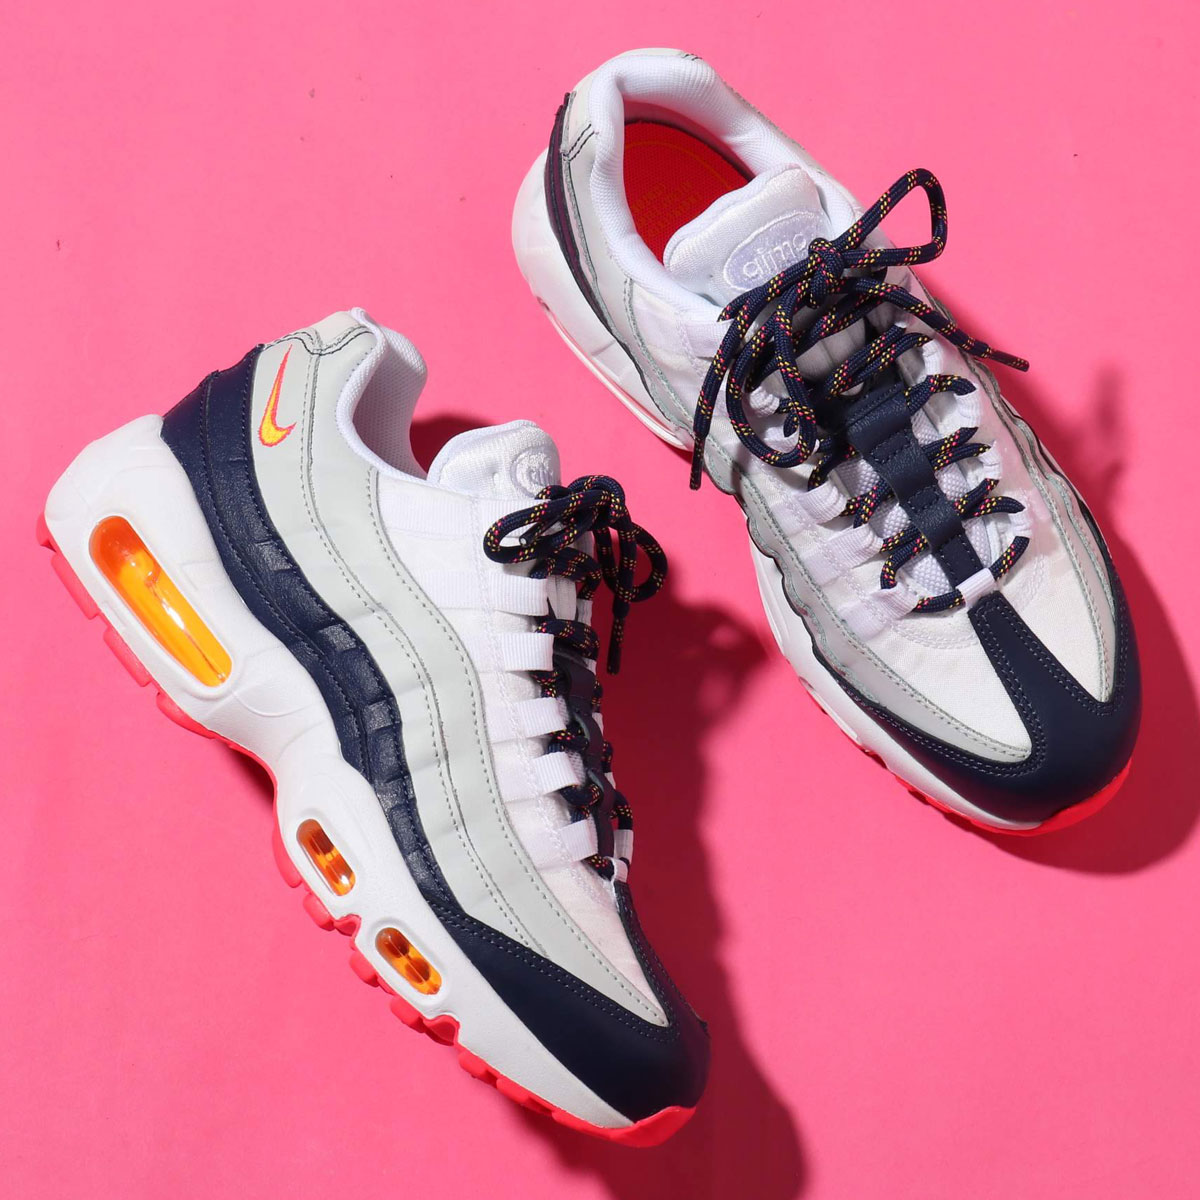 finest selection 5f07c f8e63 NIKE WMNS AIR MAX 95 (ナイキ ウィメンズ エア マックス 95) MIDNIGHT NAVY LASER ORANGE-PURE  PLATINUM  メンズ レディース スニーカー